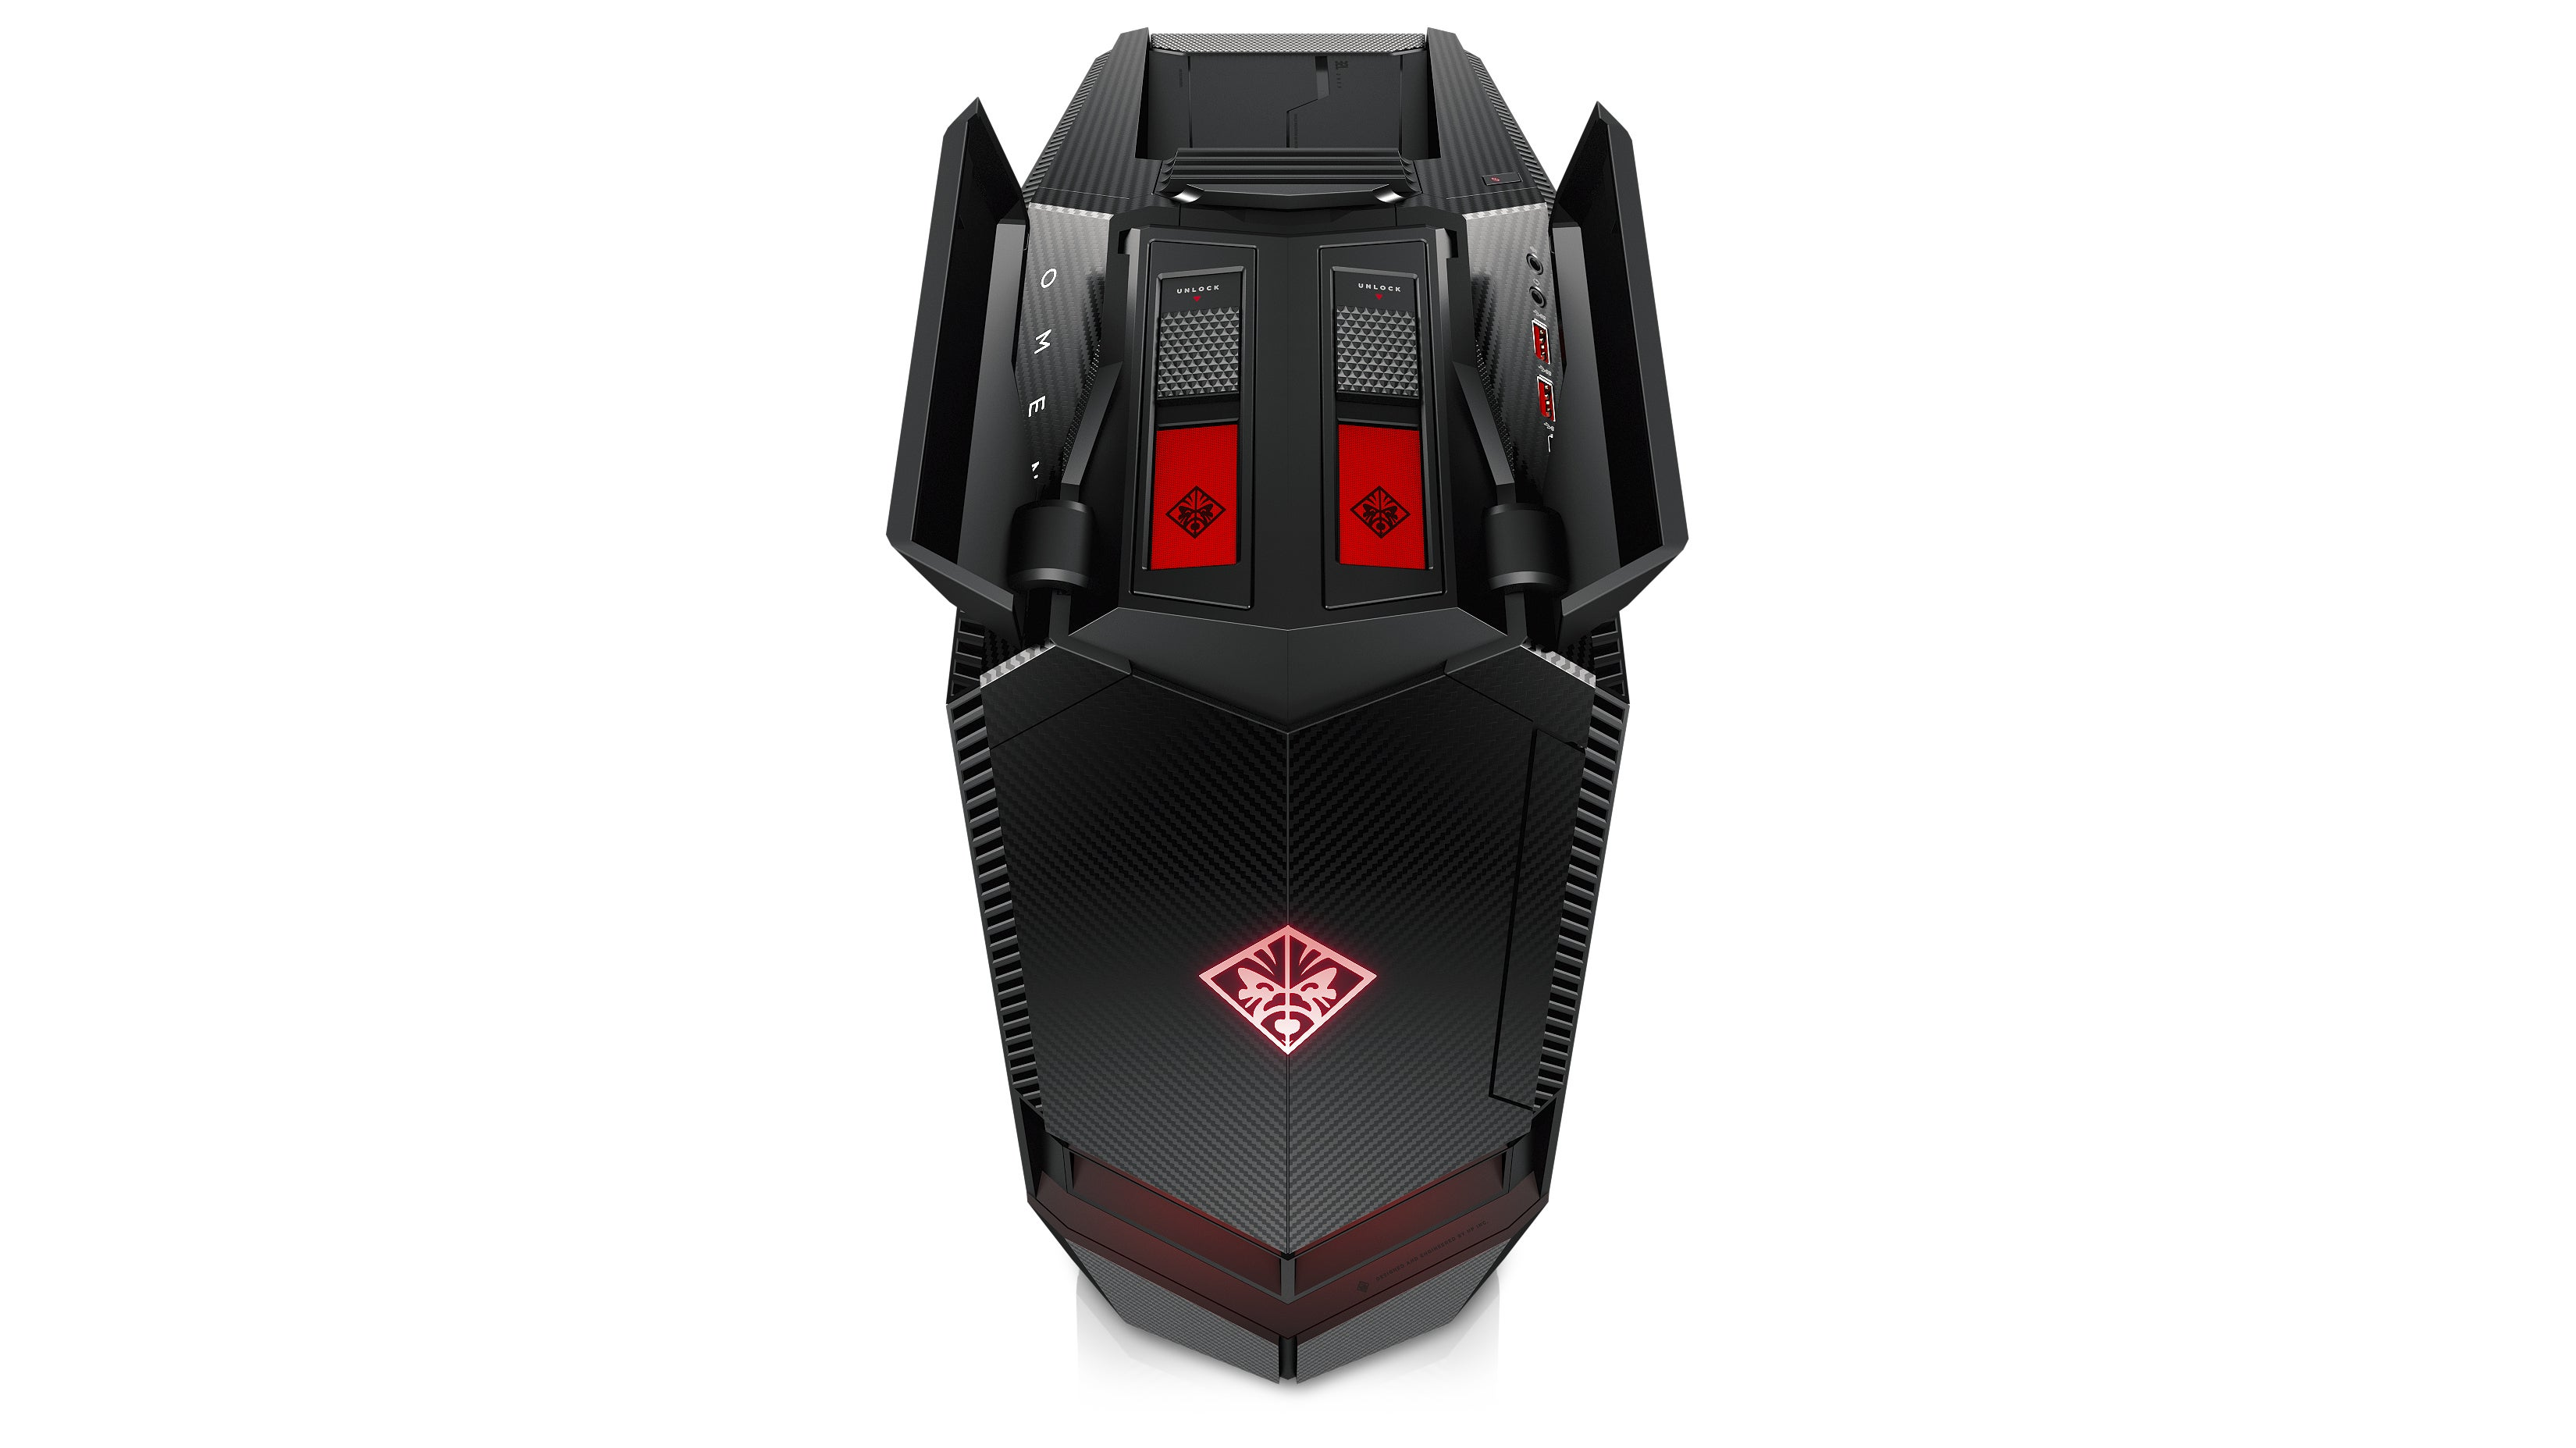 Hp Omen Desktop Price Features Release Date And More